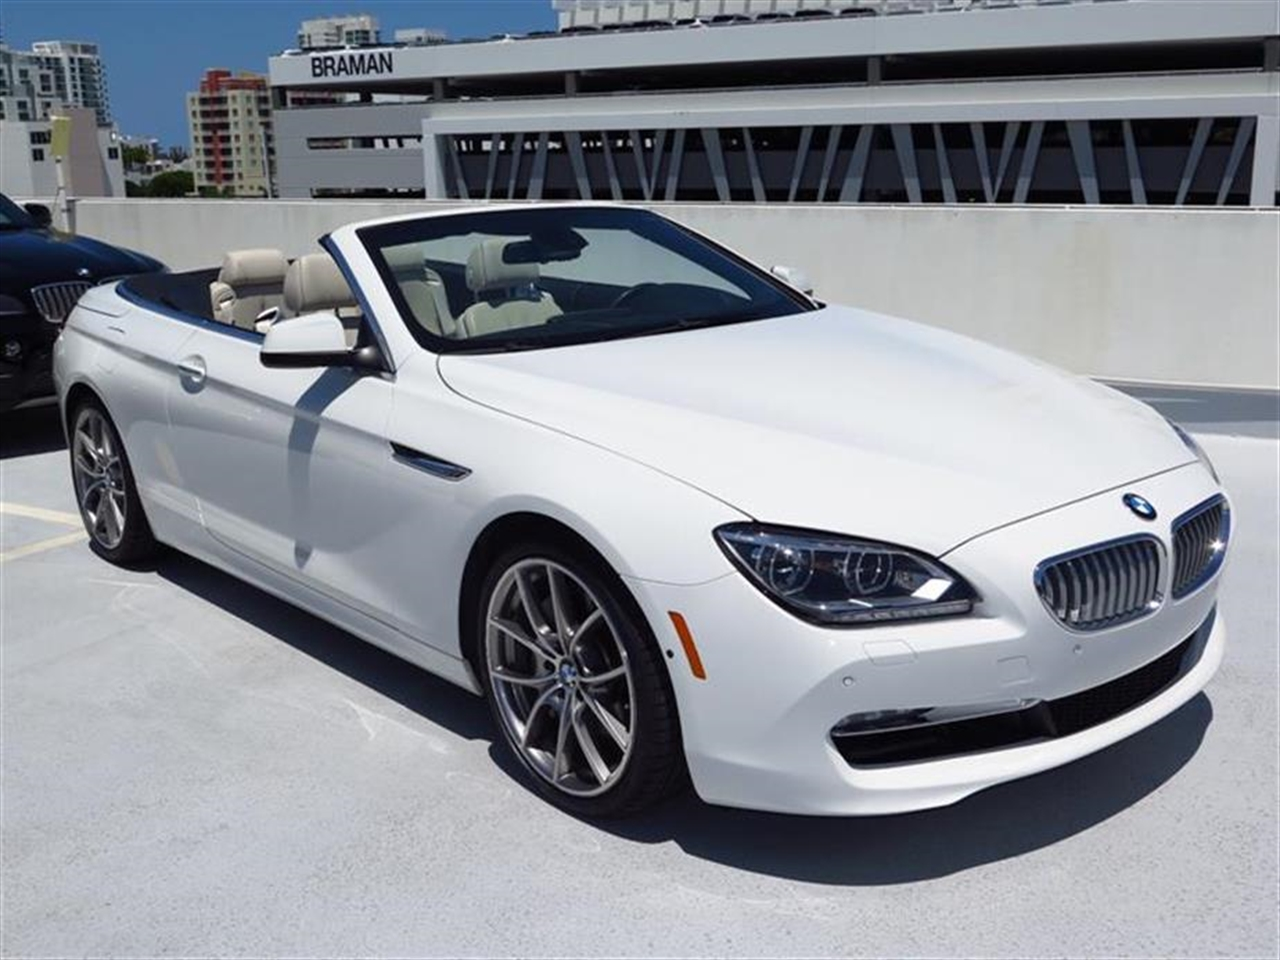 2012 BMW 6 SERIES 2dr Conv 650i 14784 miles Ambiance interior lighting Anti-theft alarm system -